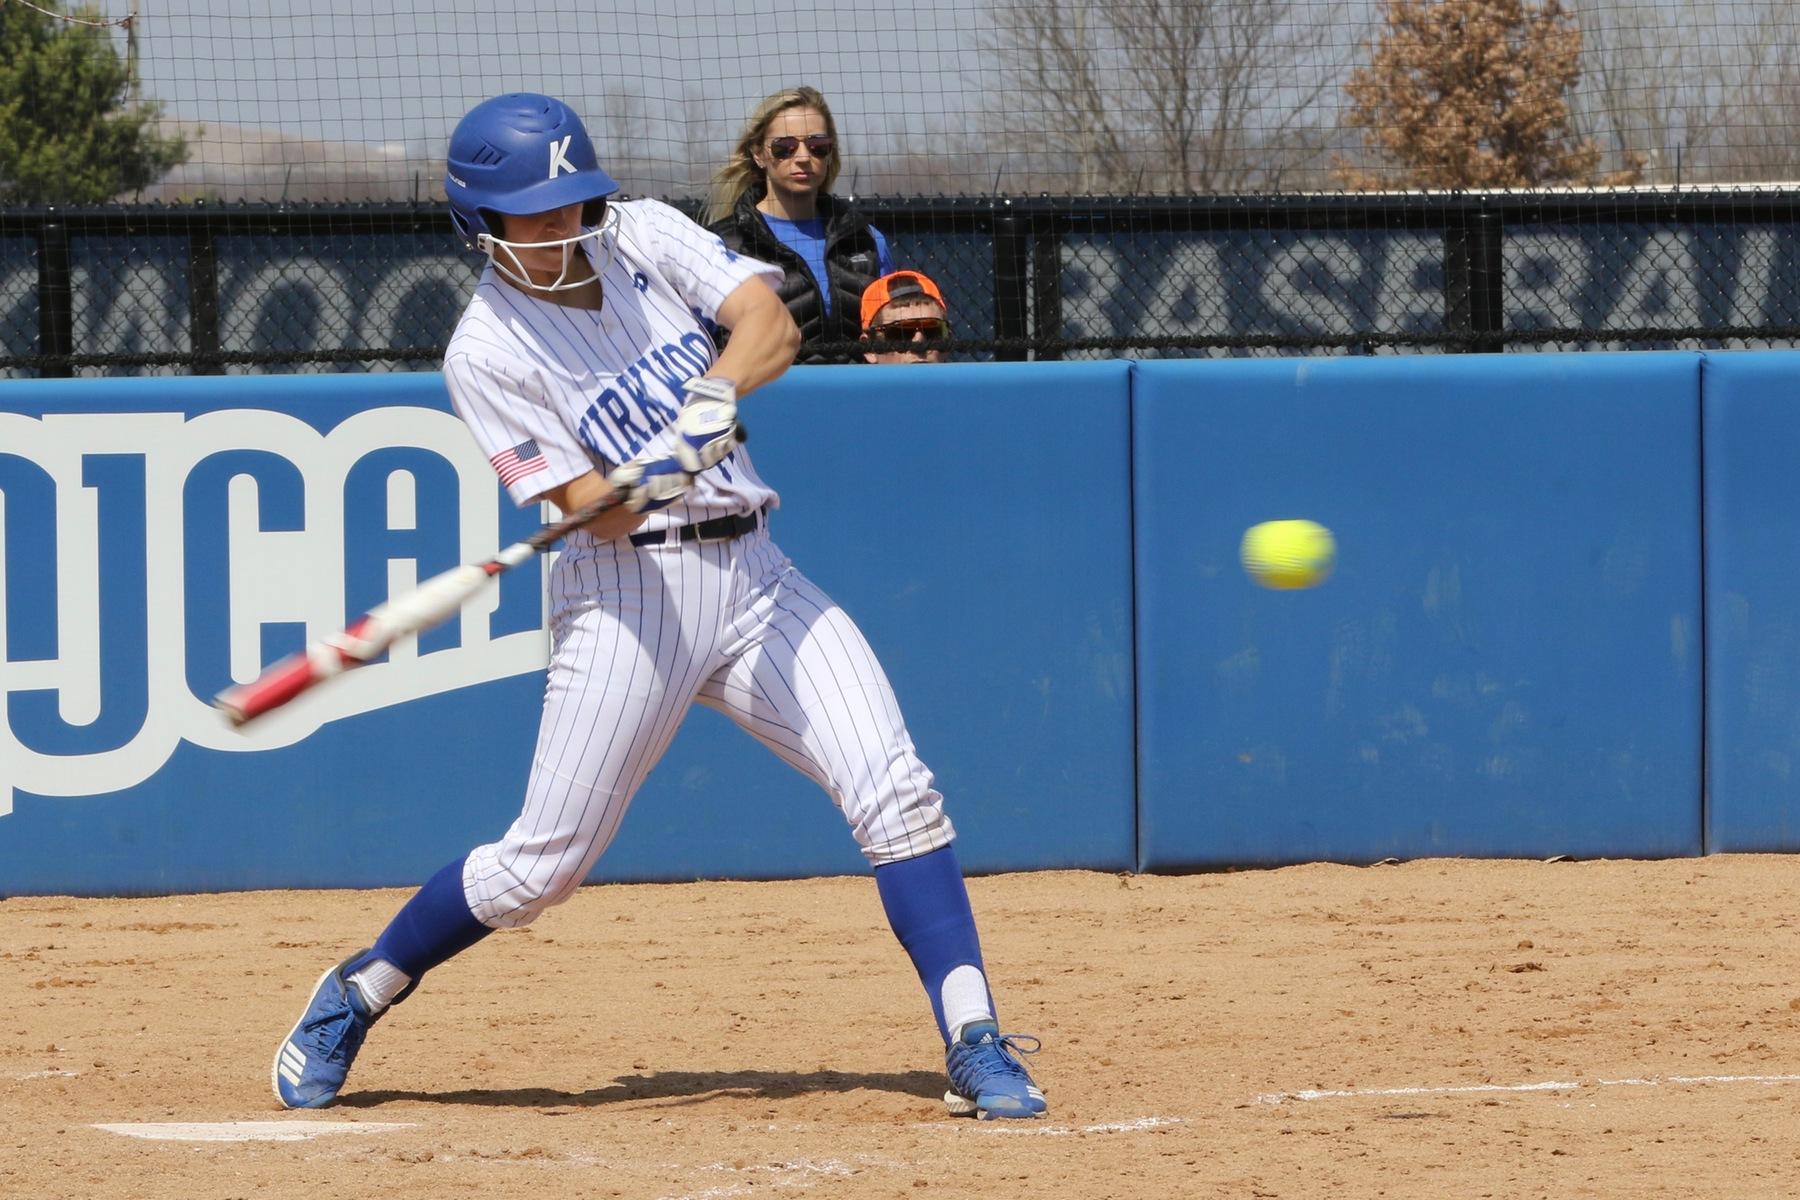 Hocker, Bouman toss shutouts for KCC